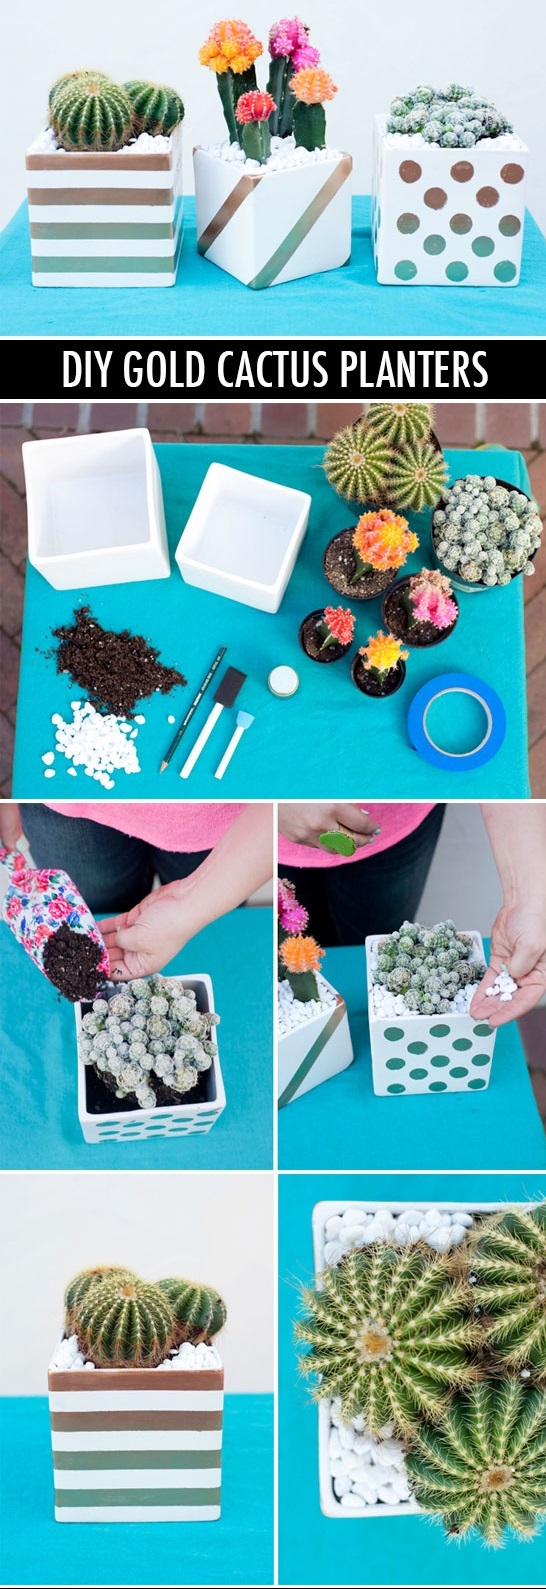 DIY Basics - Gold Patterned Cactus Planters